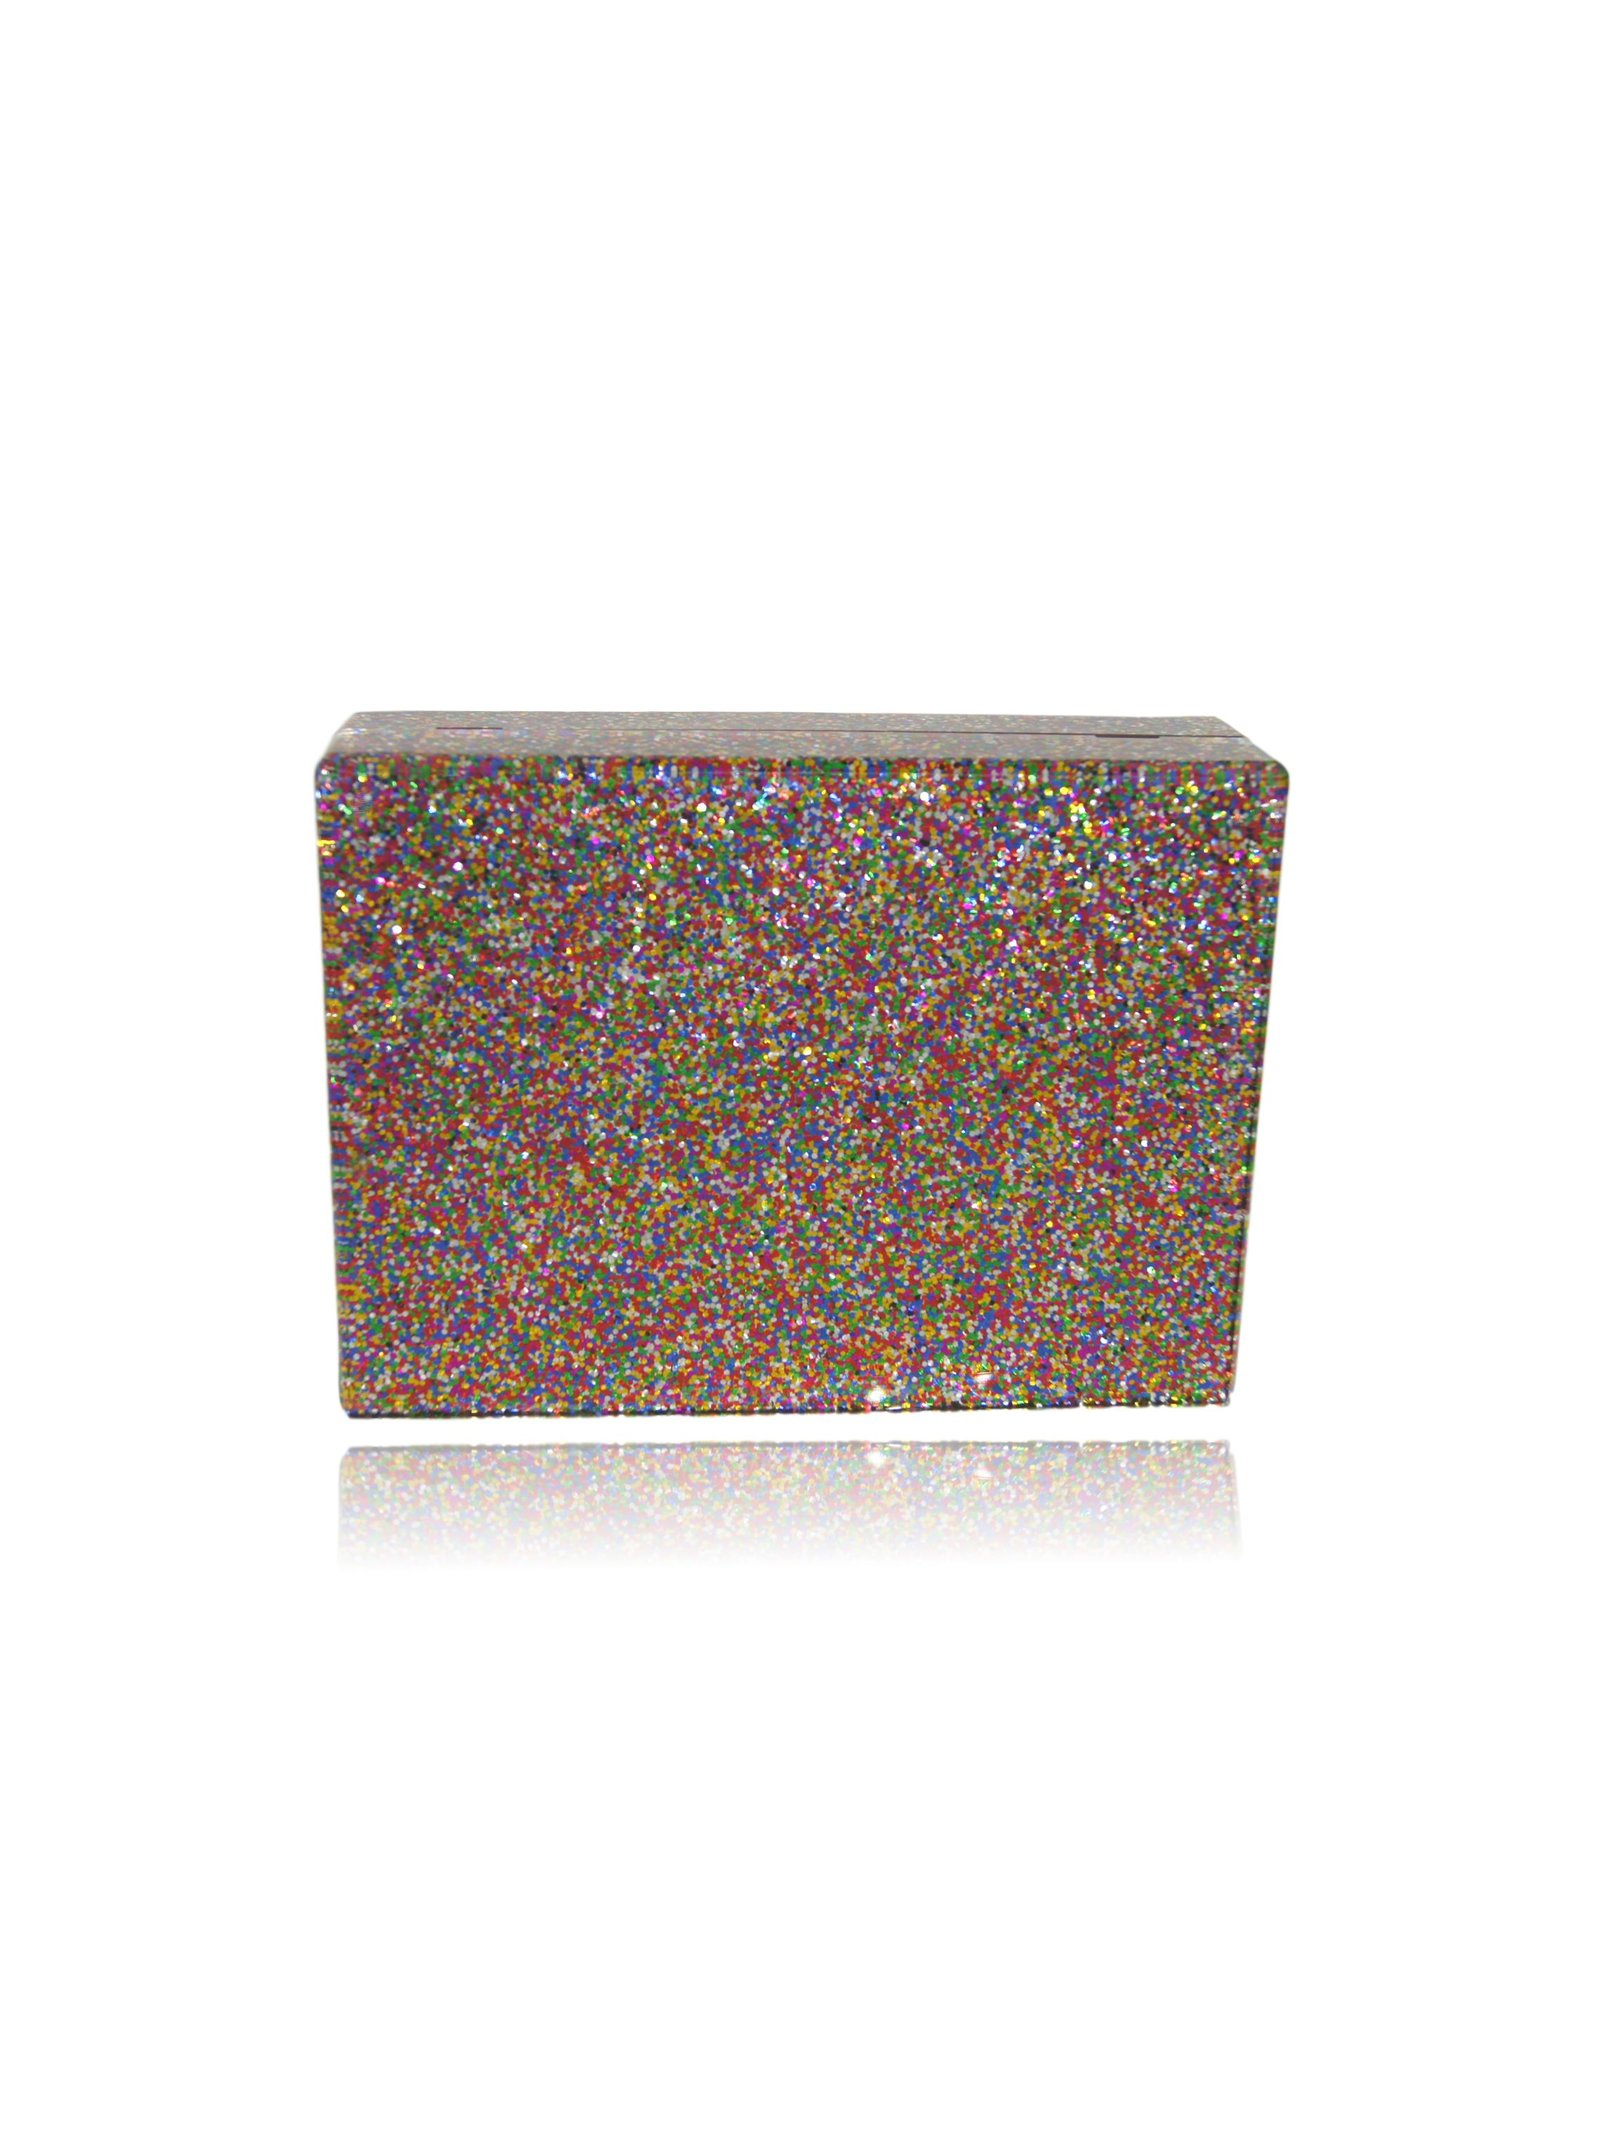 Milanblocks Rainbow Glitter Acrylic Box Clutch